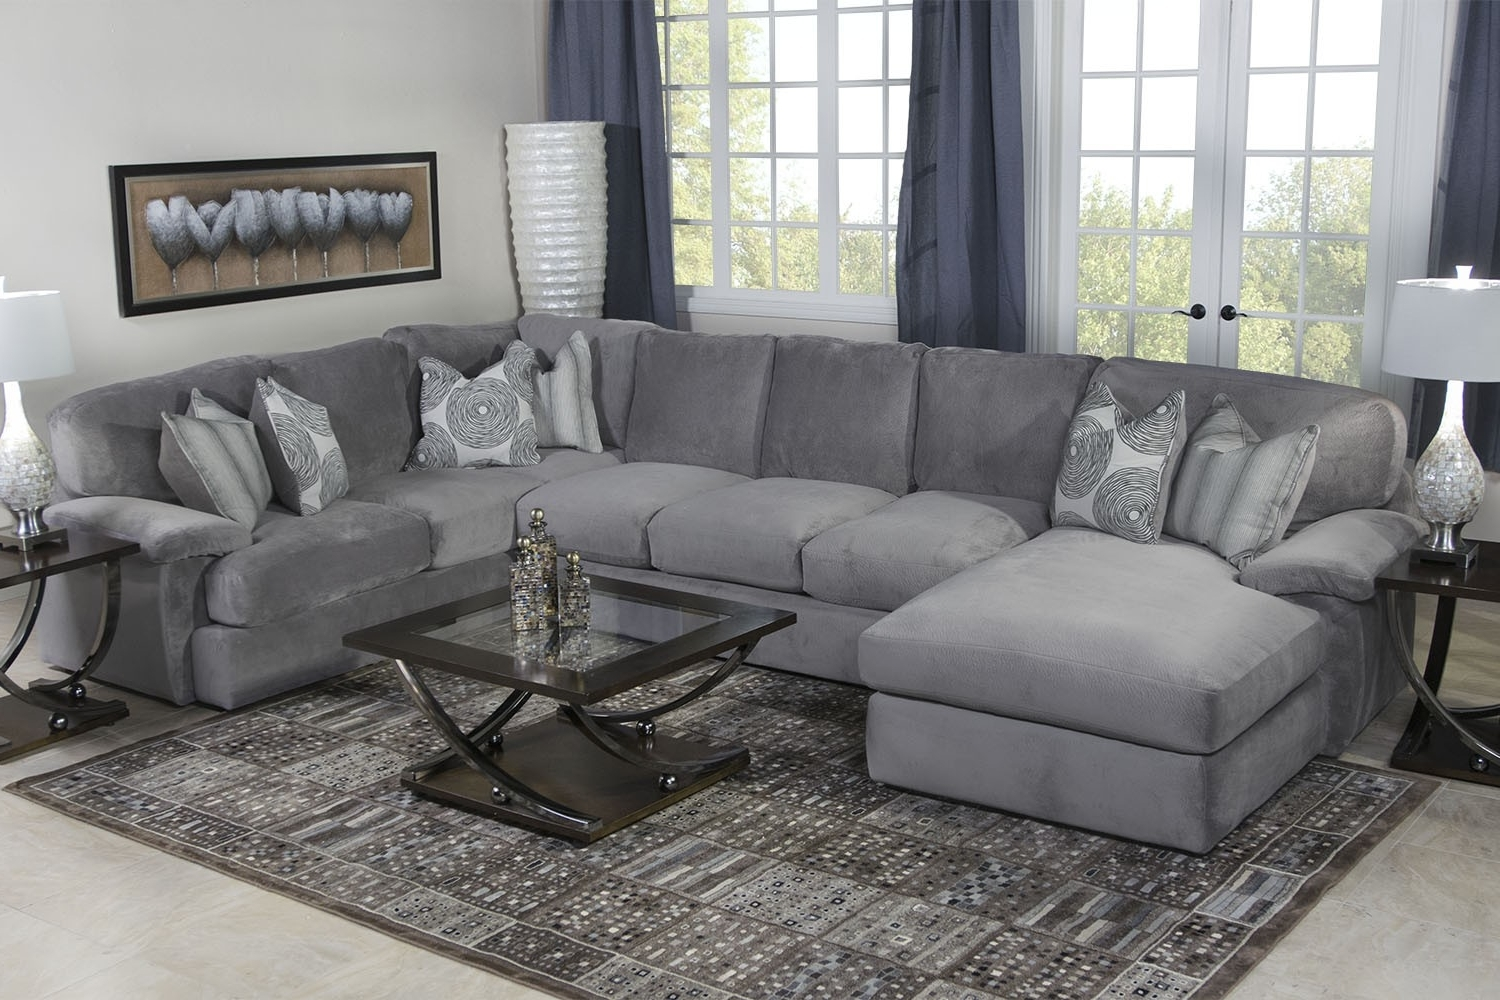 Key West Sectional Living Room In Gray Media Image  (View 3 of 20)